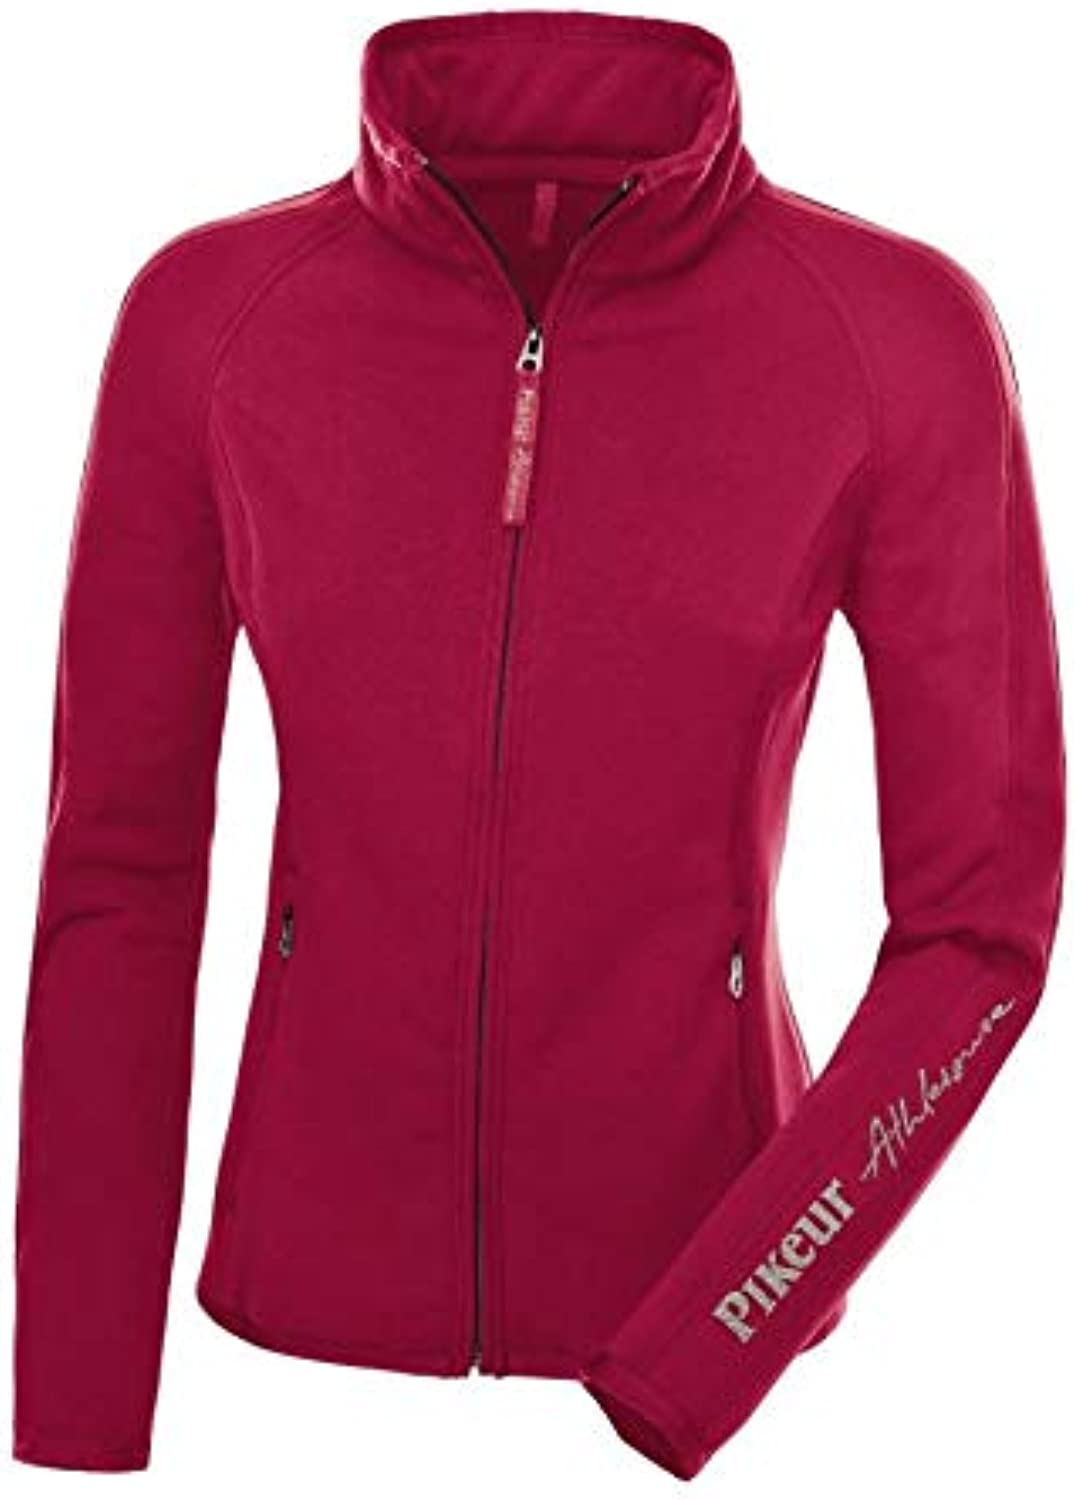 Pikeur Women's Polartec Functional Shirt Laila Colour Riding Clothing Persian Red Size 46